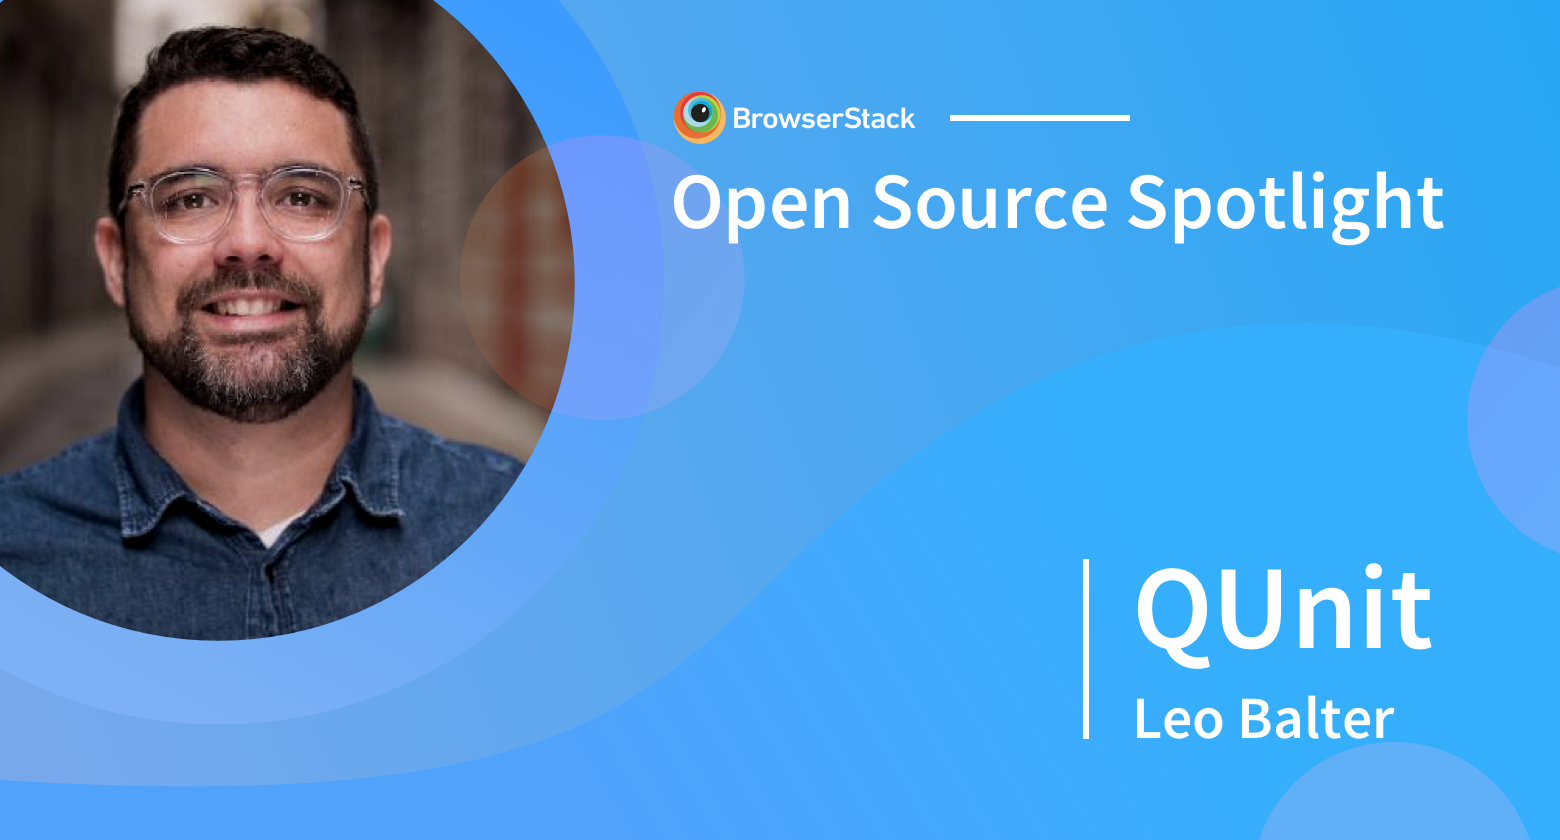 Open Source Spotlight QUnit with Leo Balter